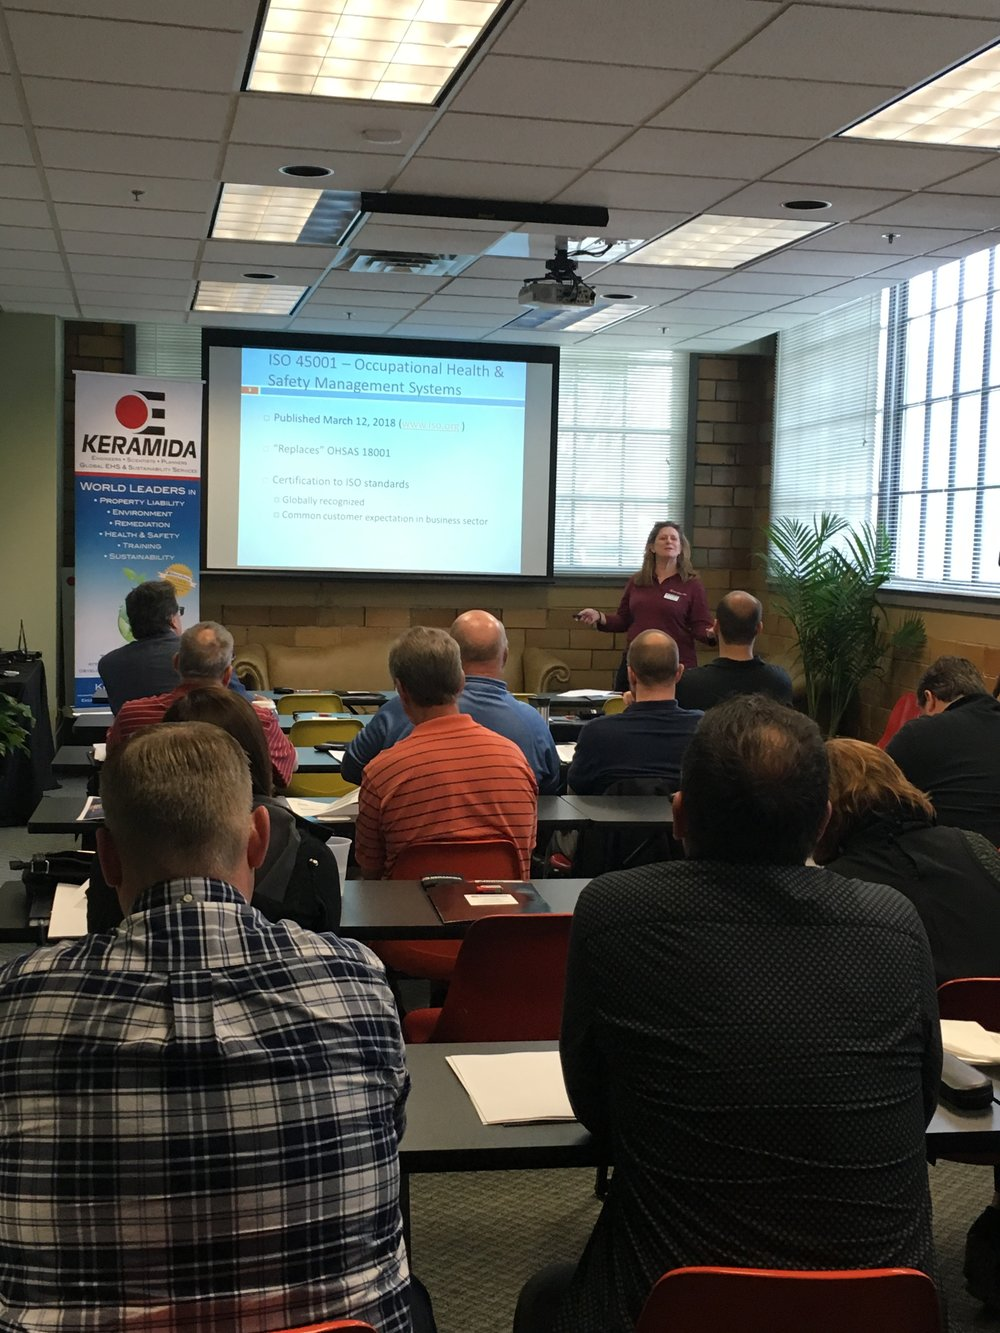 Kristen Belcredi speaking about the new ISO 45001 Health & Safety Management System